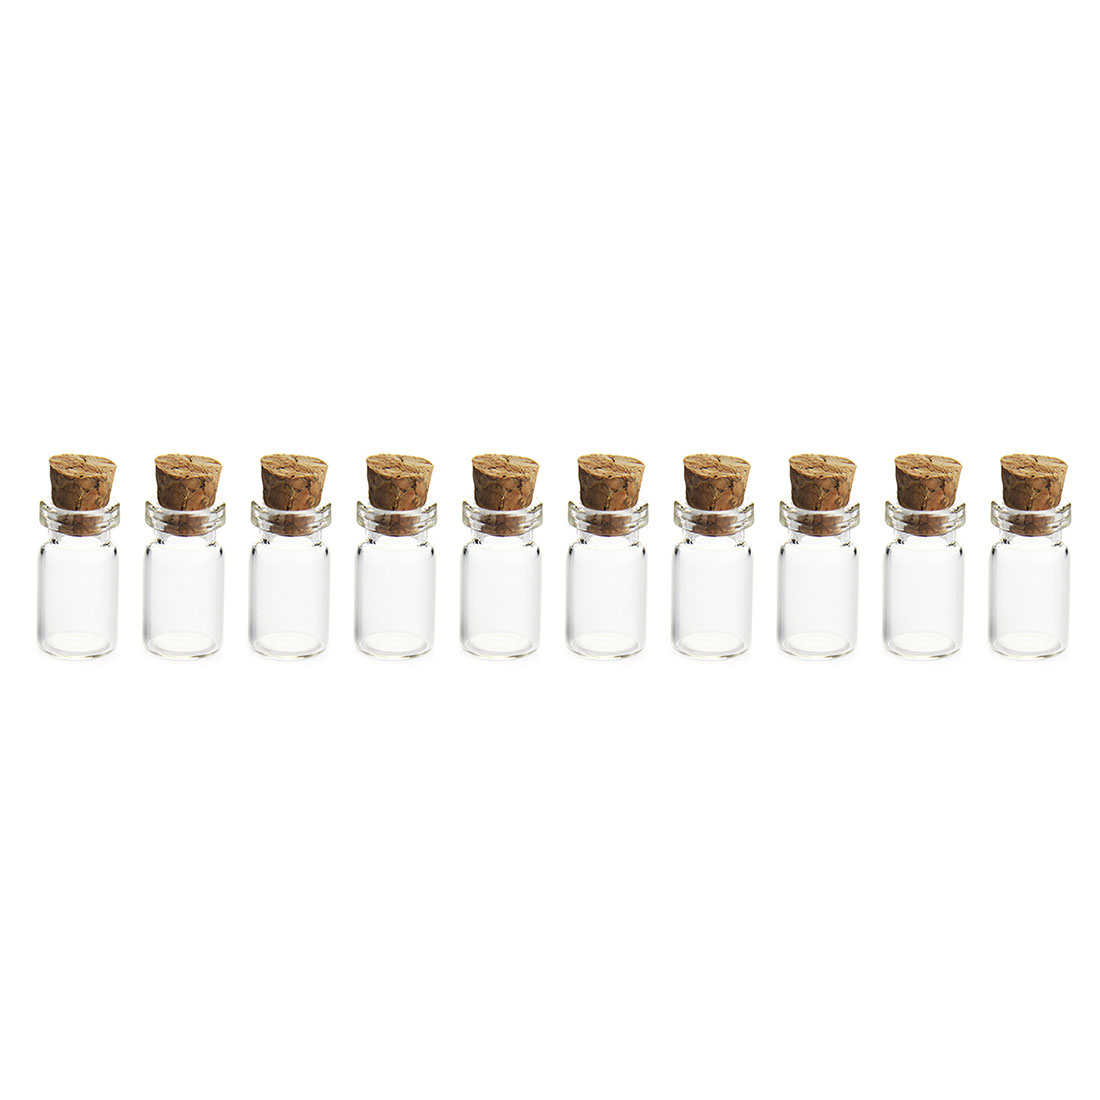 1 to 42 pcs Bottle set Glass Mini Apothecary Vial Cork Craft Tiny Doll WHOLESALE